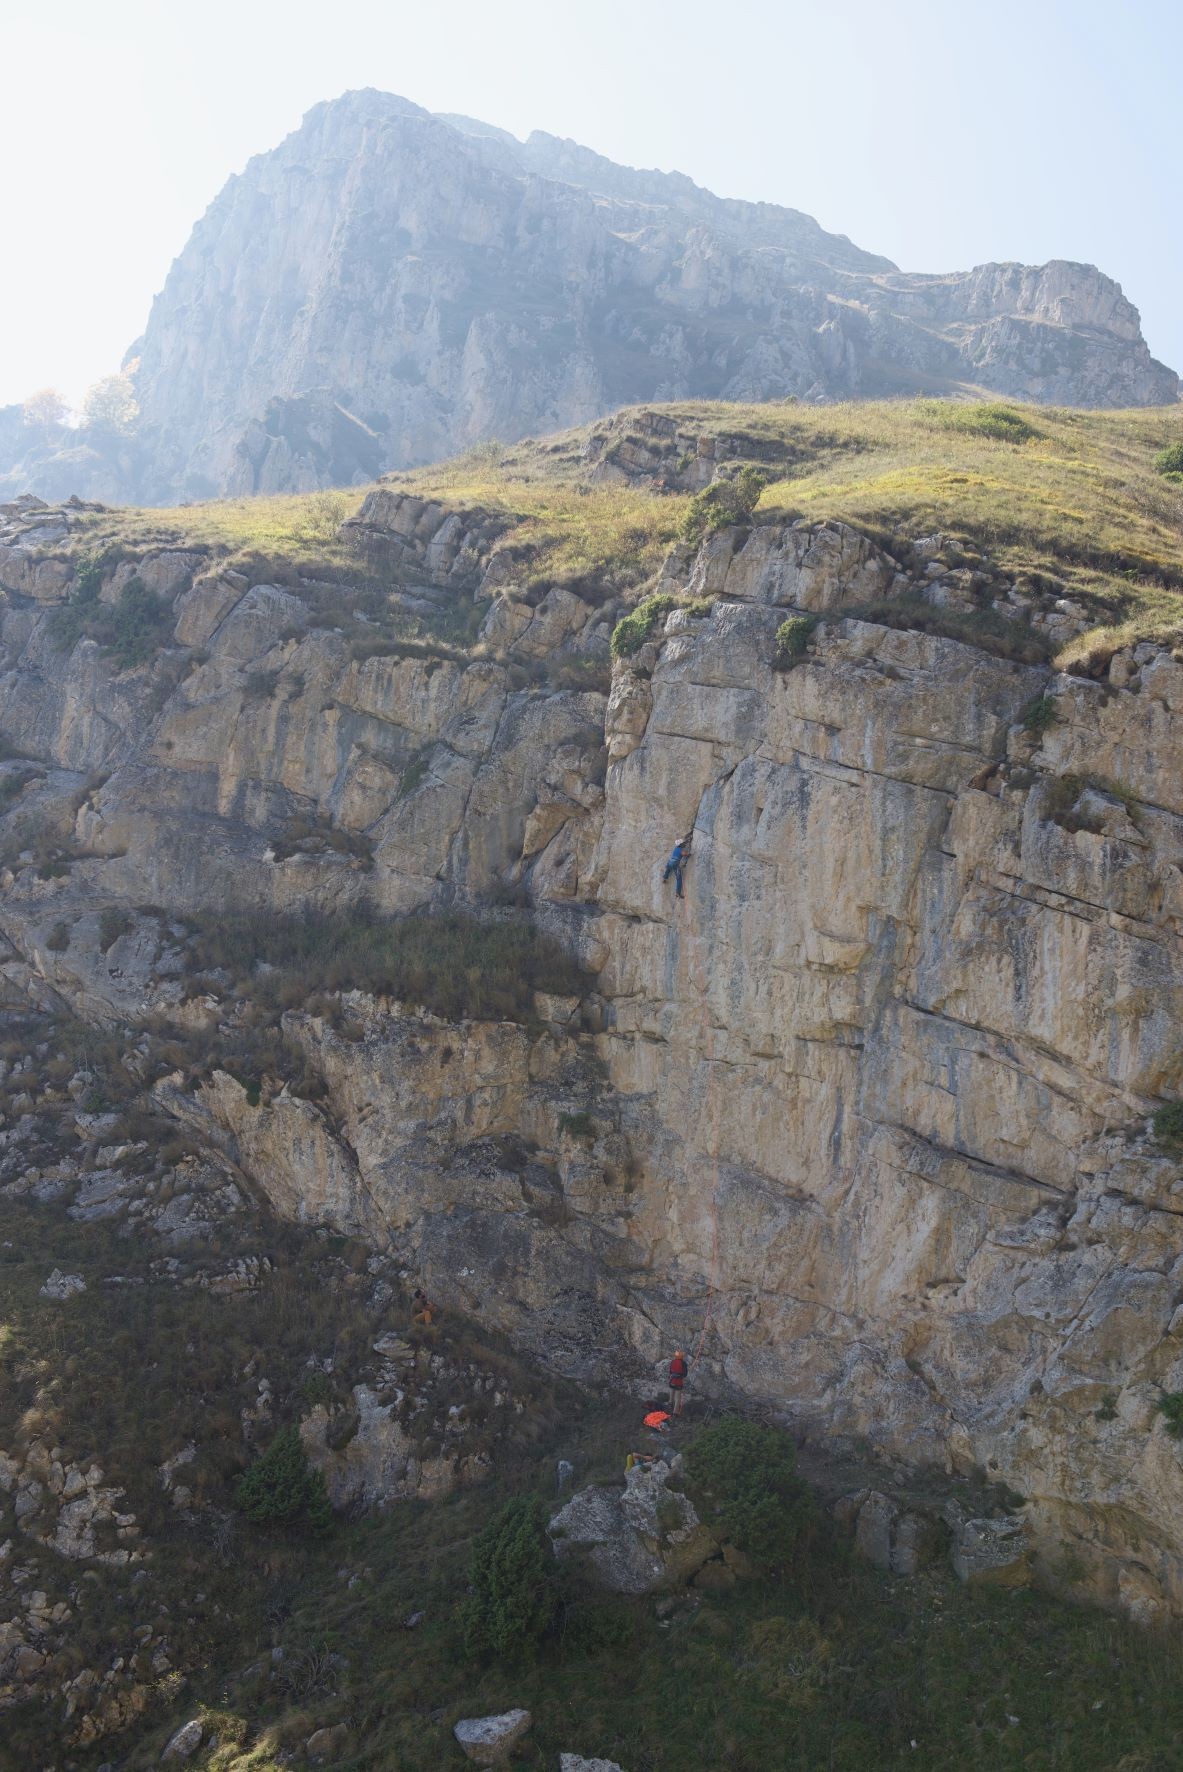 A person climbing on the cliffs at Dilijans, Armenia